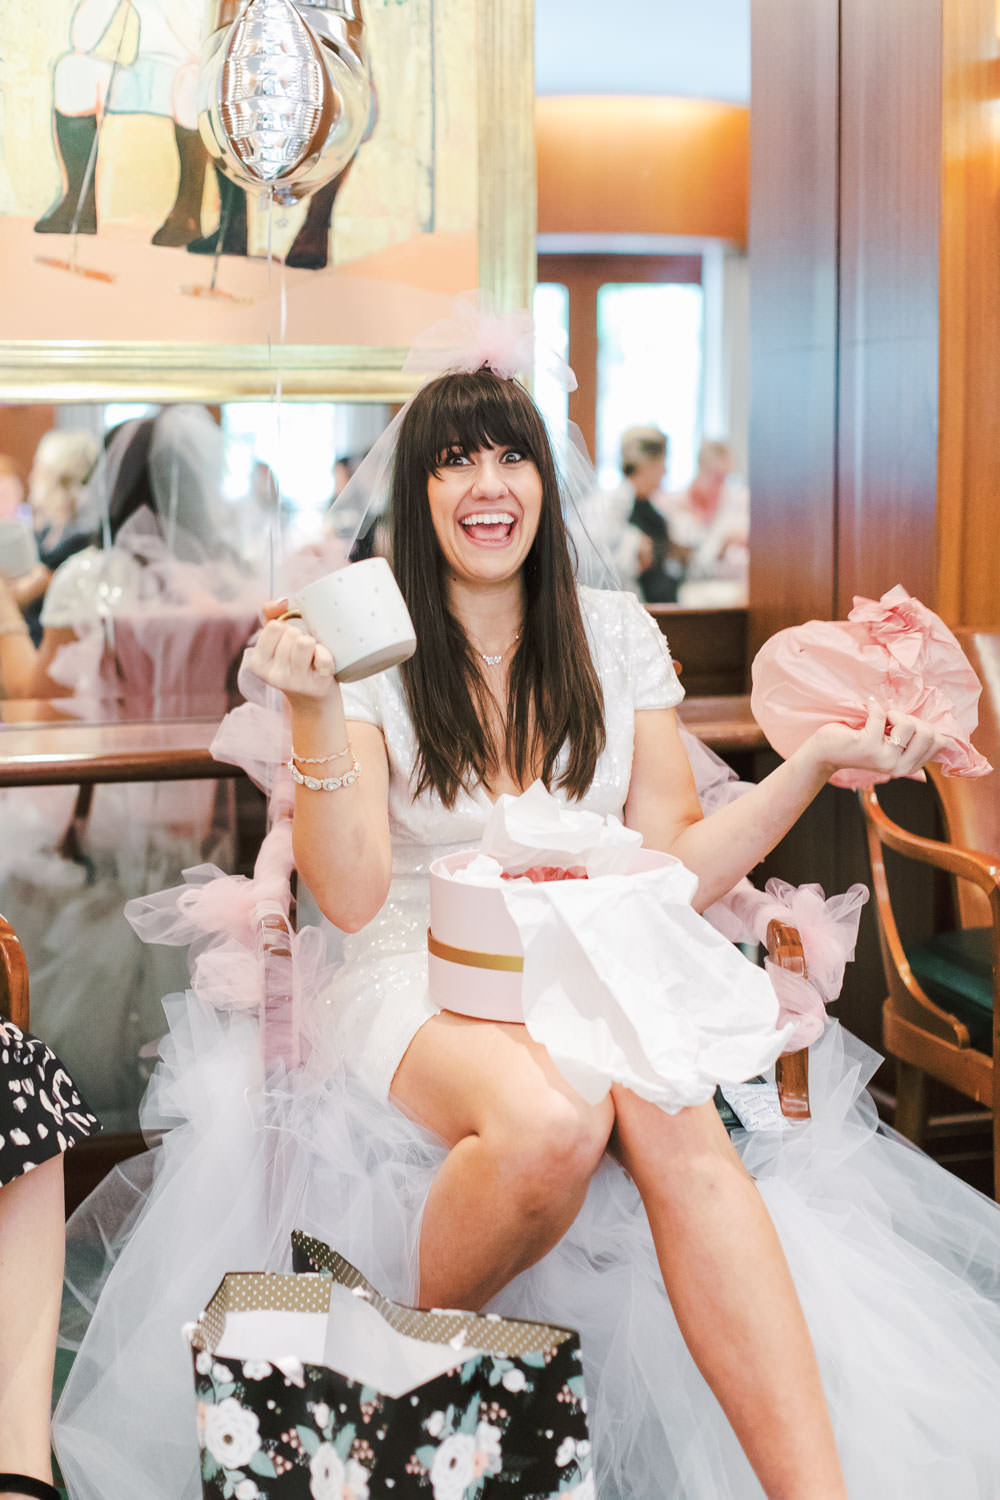 Bride opening gifts, Chic Beverly Hills Hotel Bridal Shower during Christmas time, Cavin Elizabeth Photography